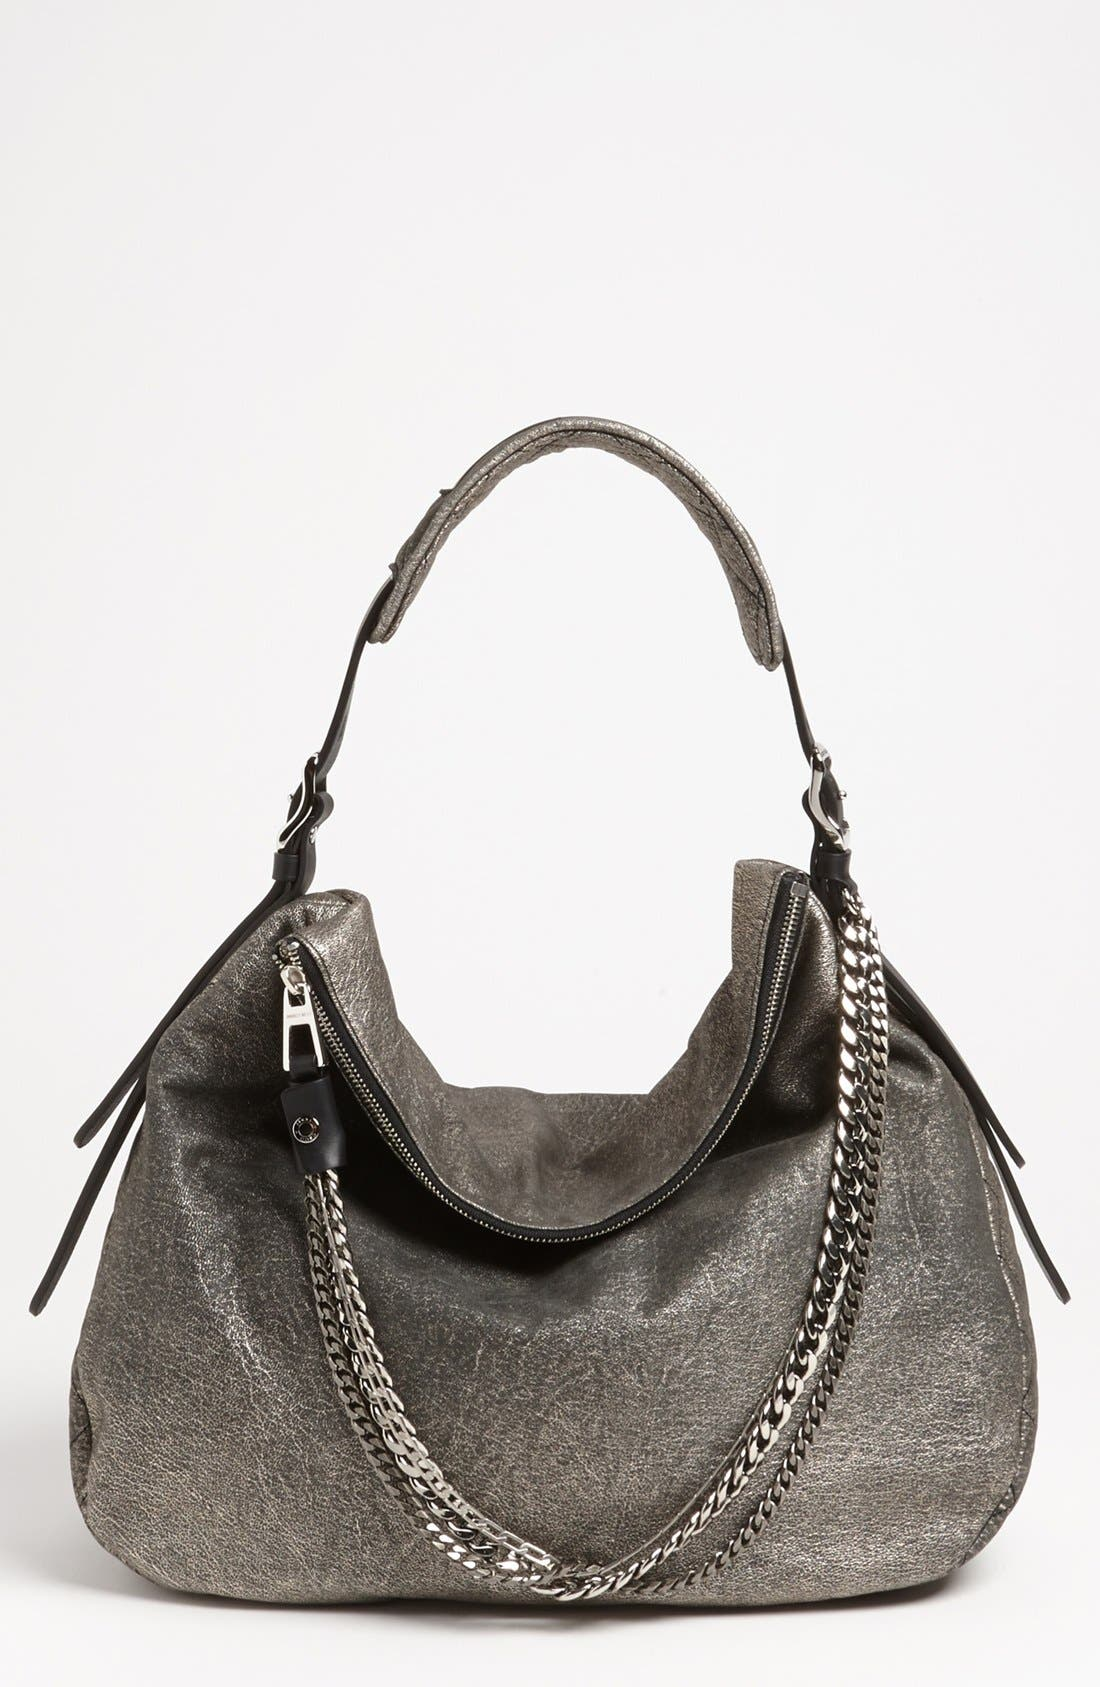 Alternate Image 1 Selected - Jimmy Choo 'Large Boho' Metallic Suede Hobo